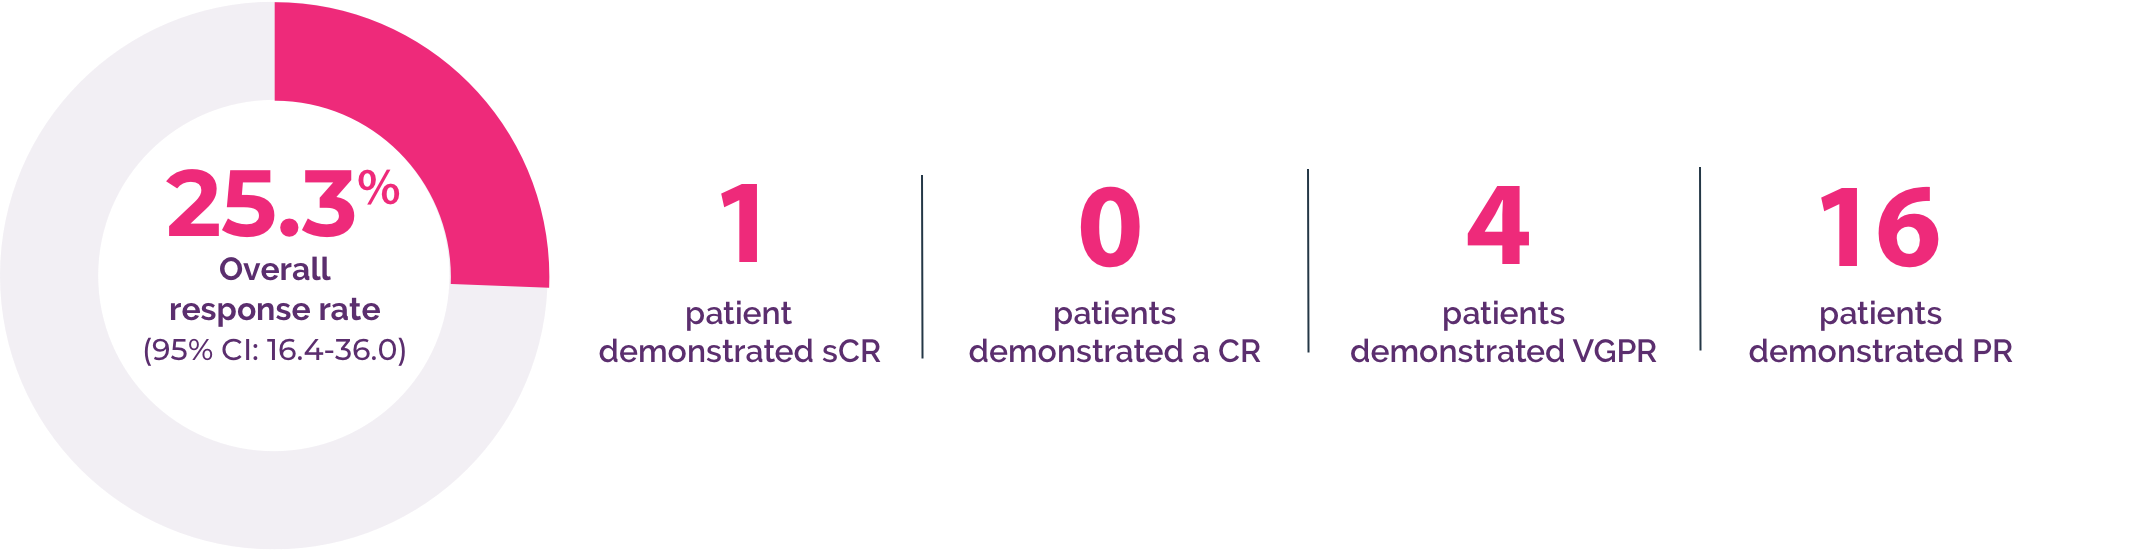 Graphic used to show the differences in overall response rate of patients